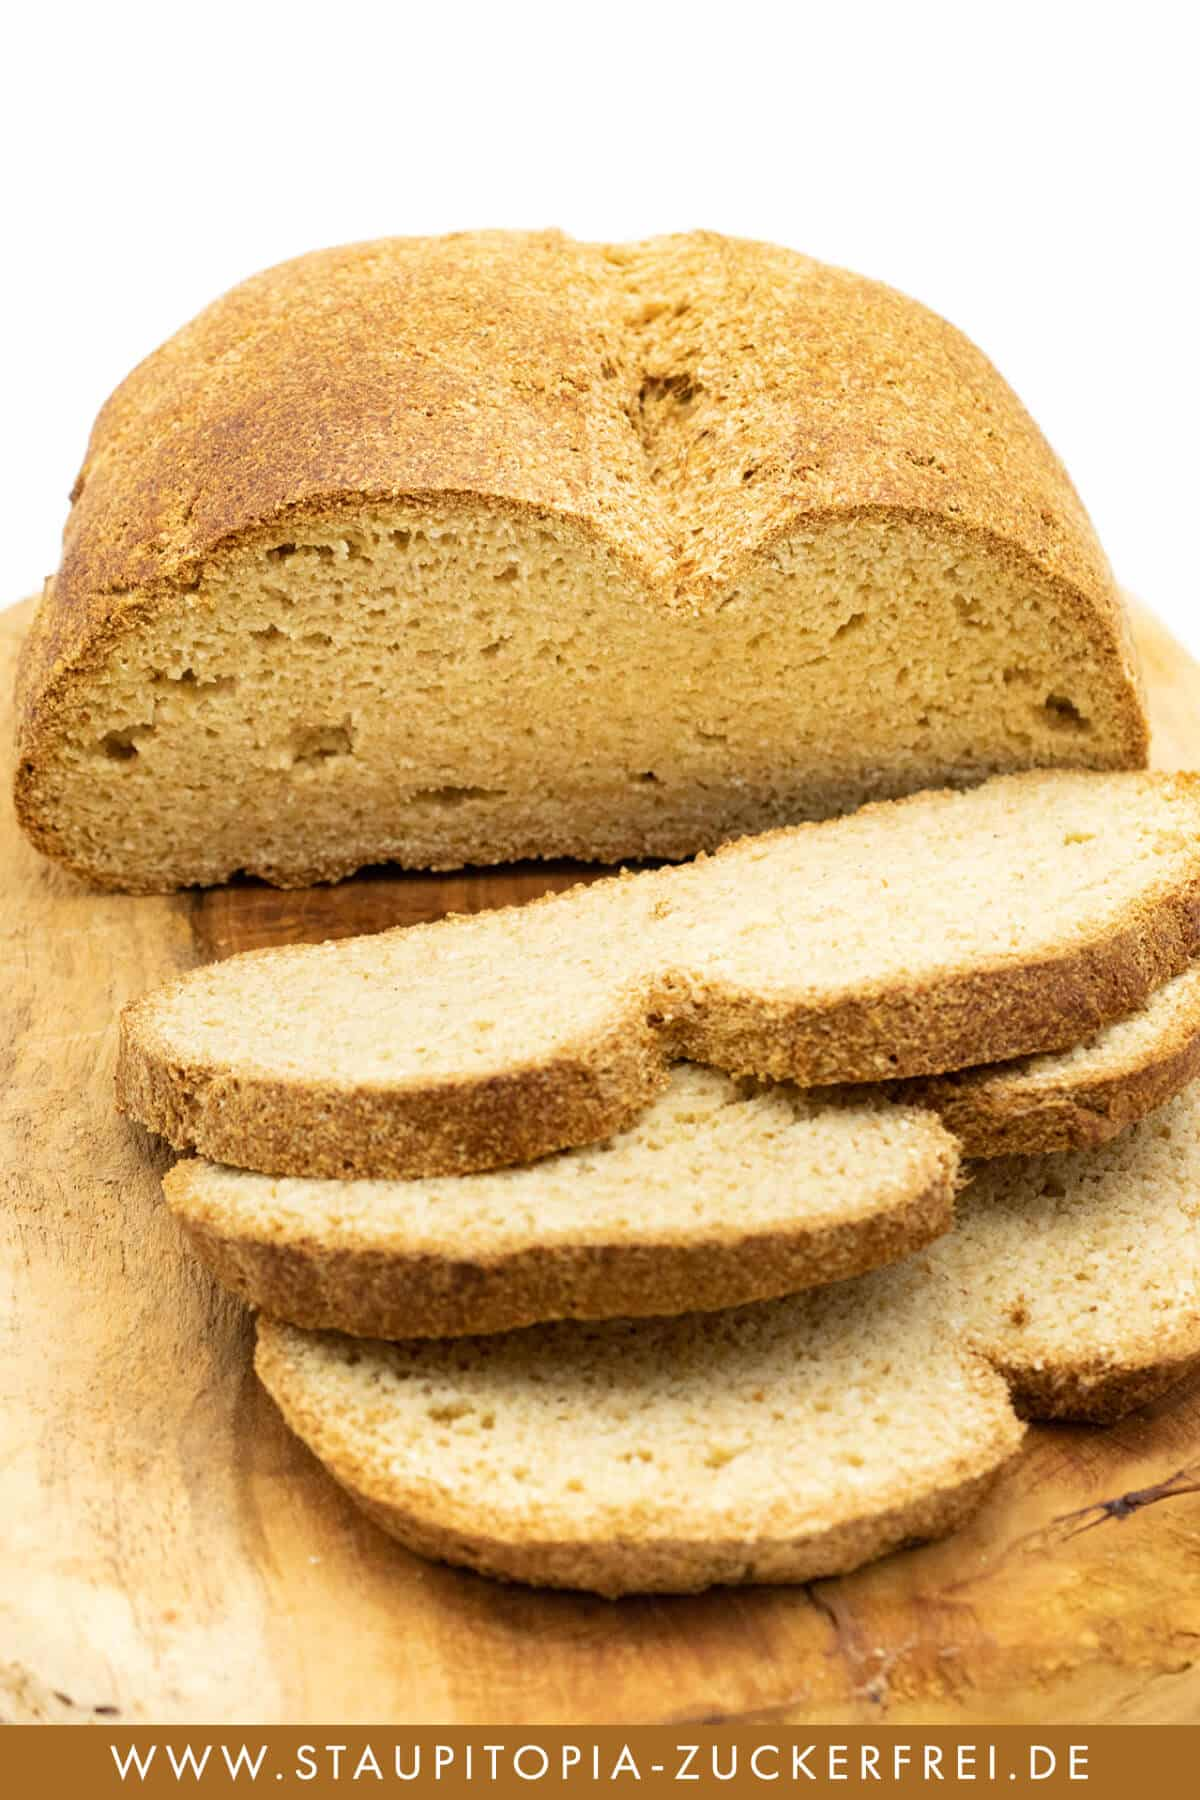 Bestes Low Carb Brot ohne Kohlenhydrate